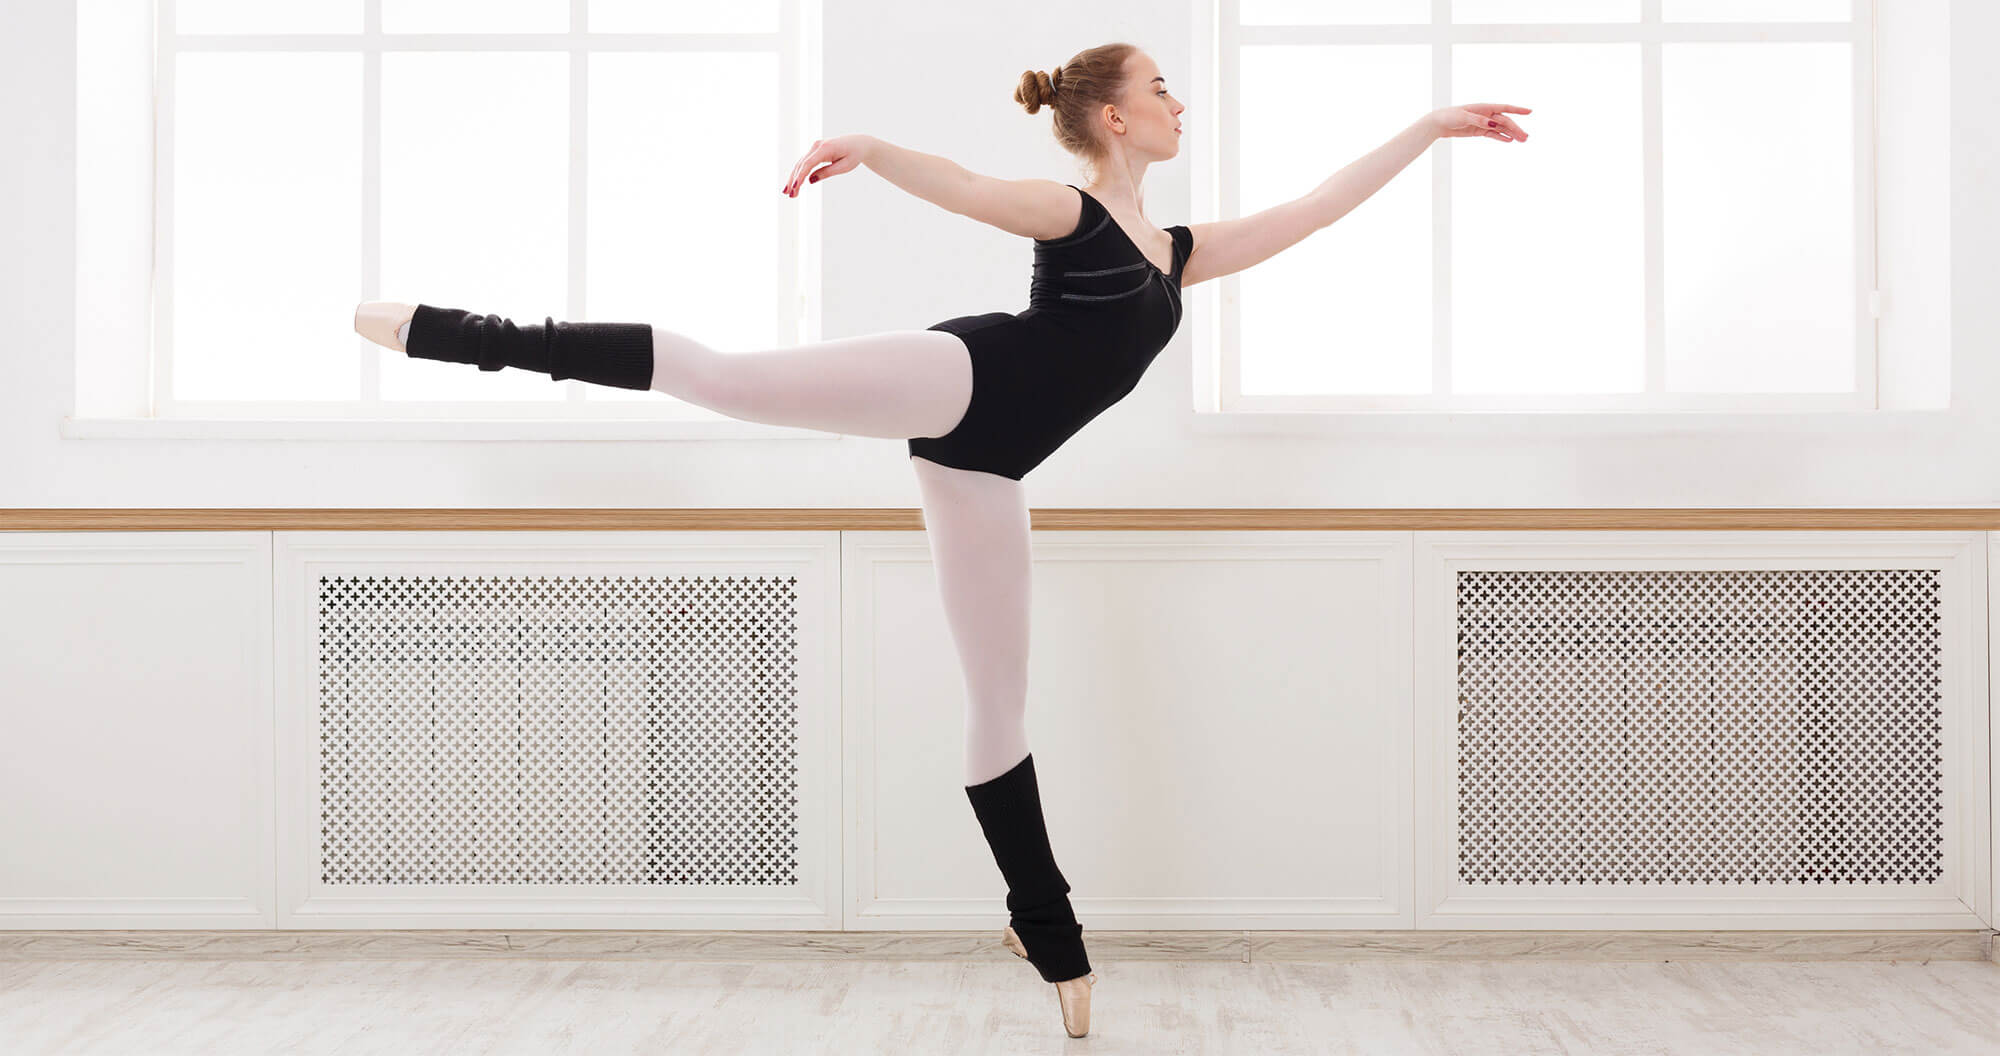 Ballet is your passion